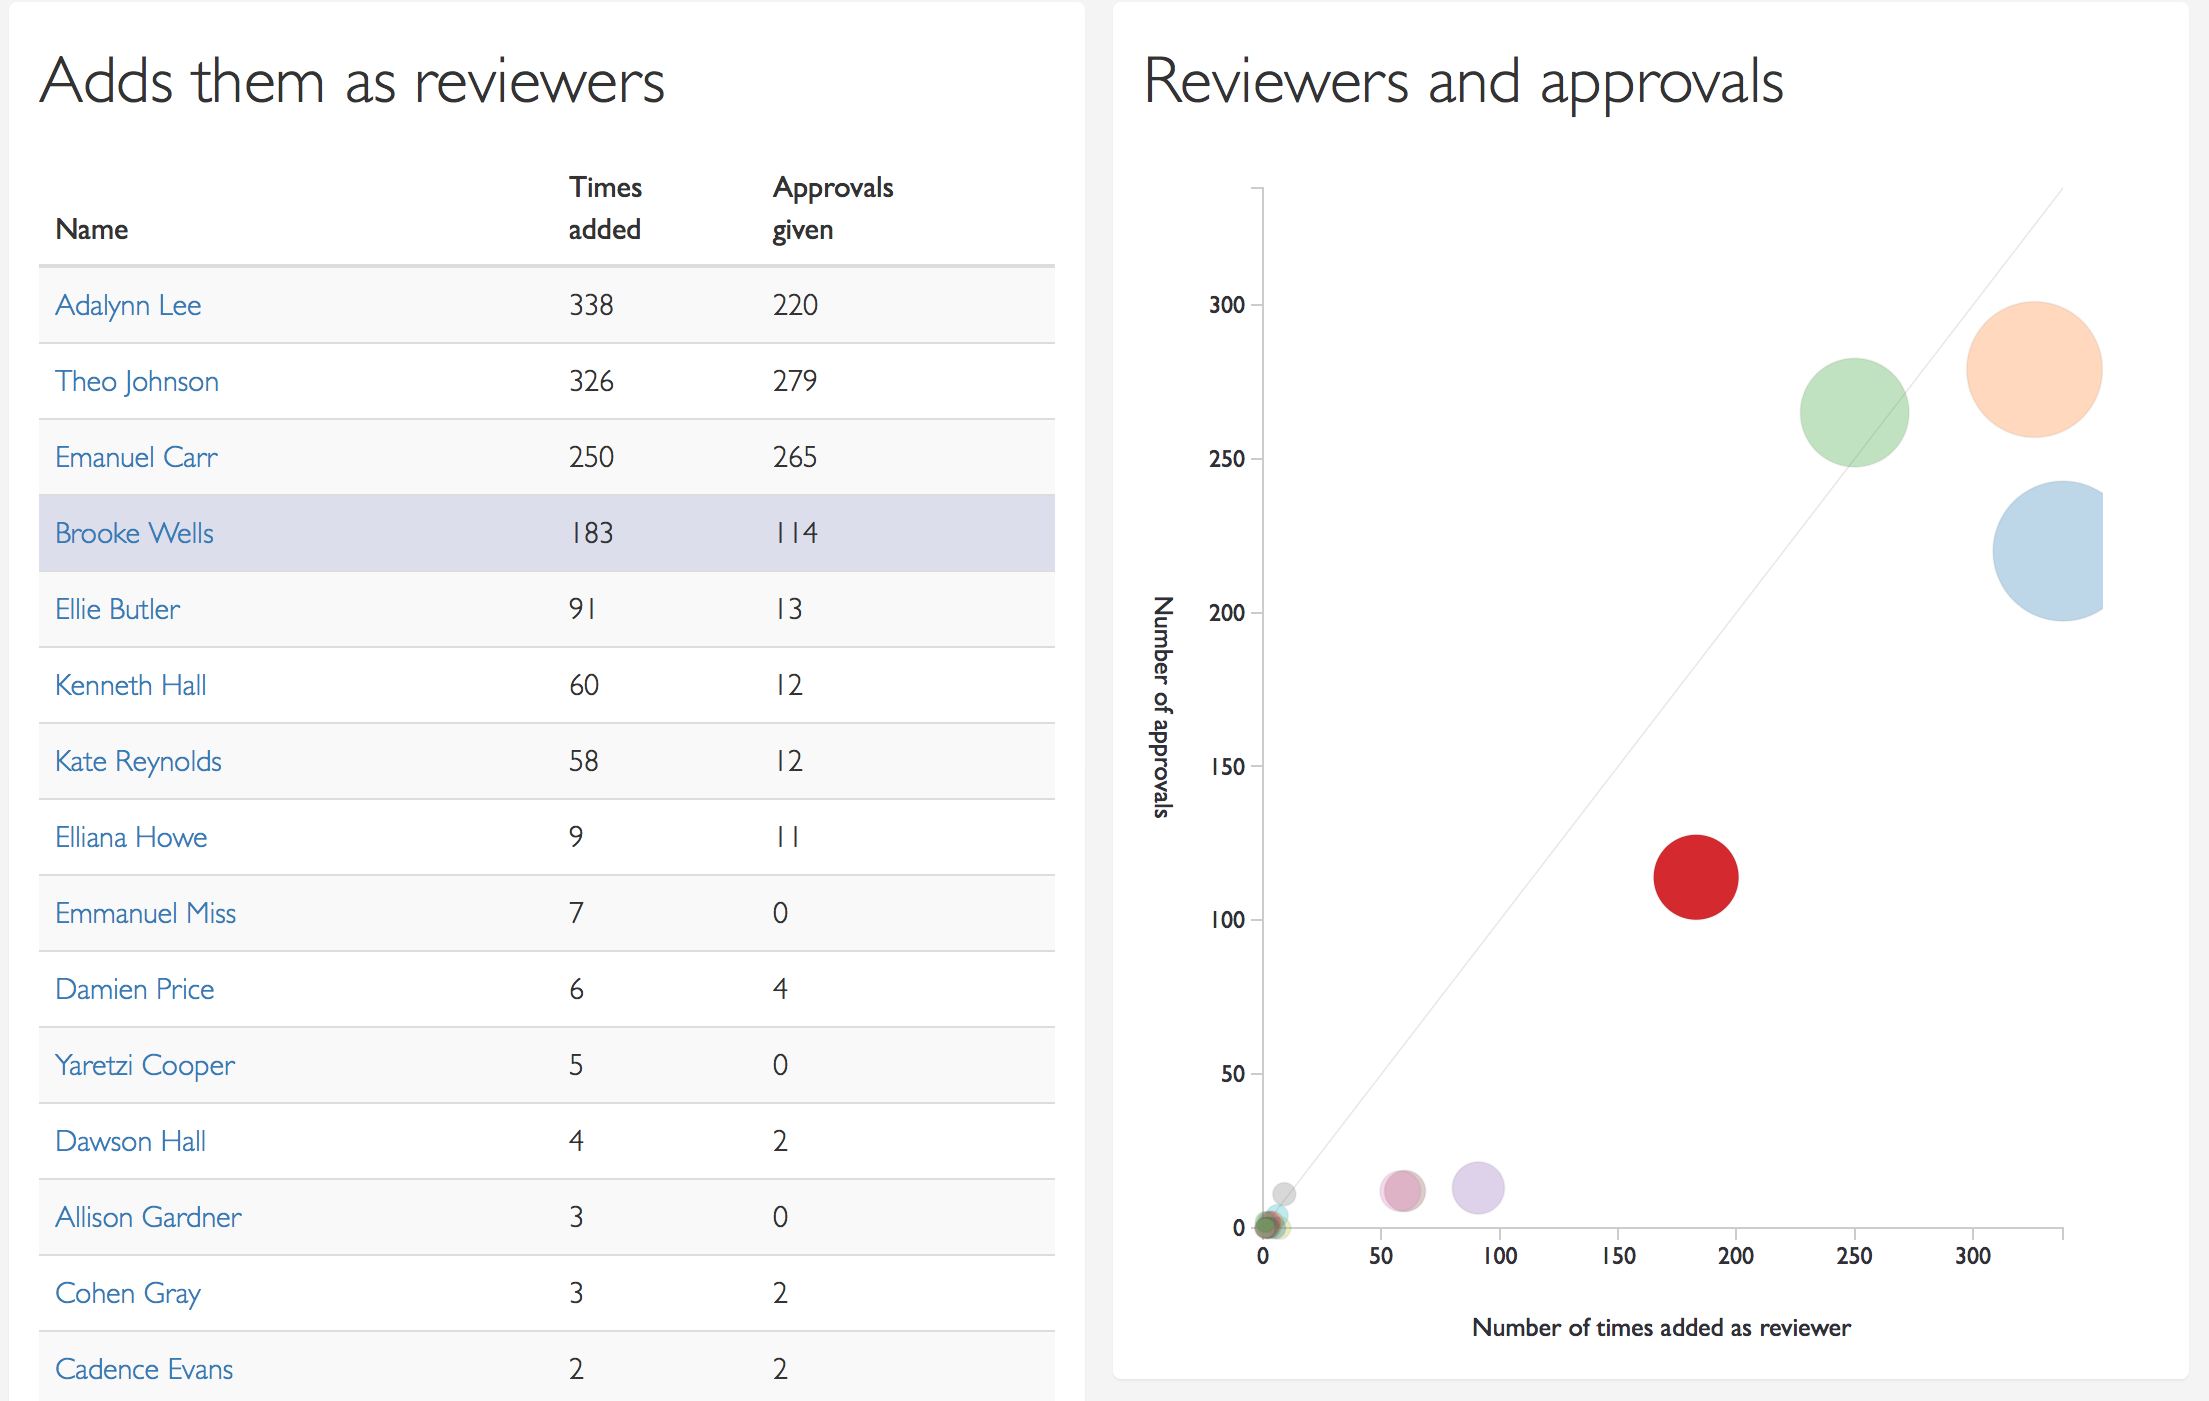 A chart and table showing who this user adds as a reviewer, and how often they approve the changes